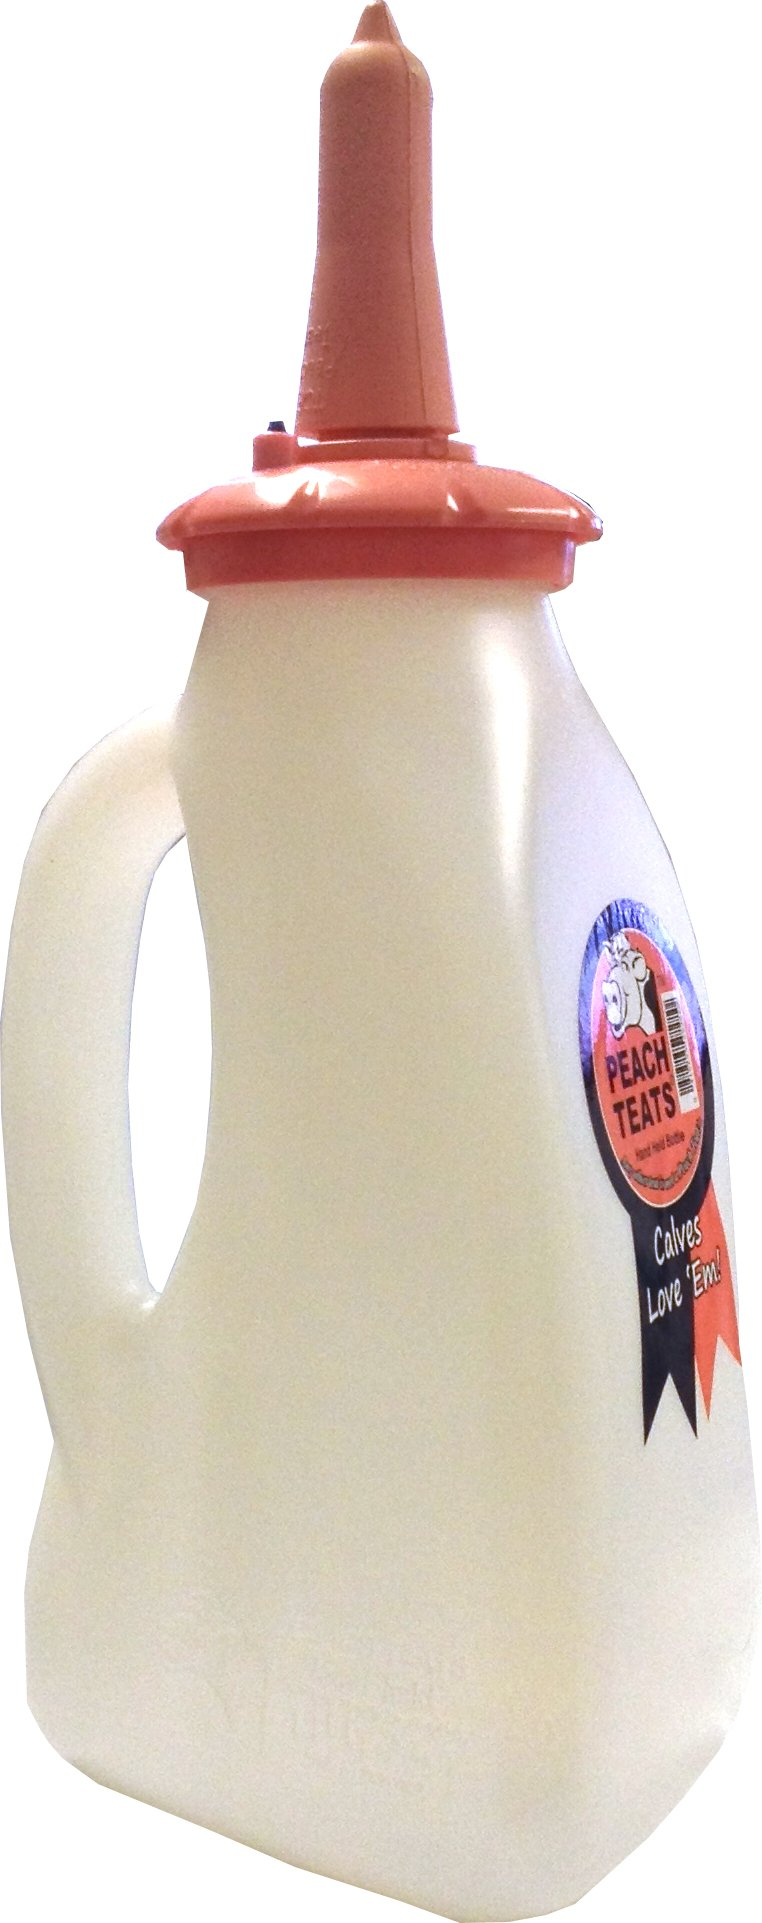 Peach Teats Hand Held Bottle, White by Peach Teats (Image #5)